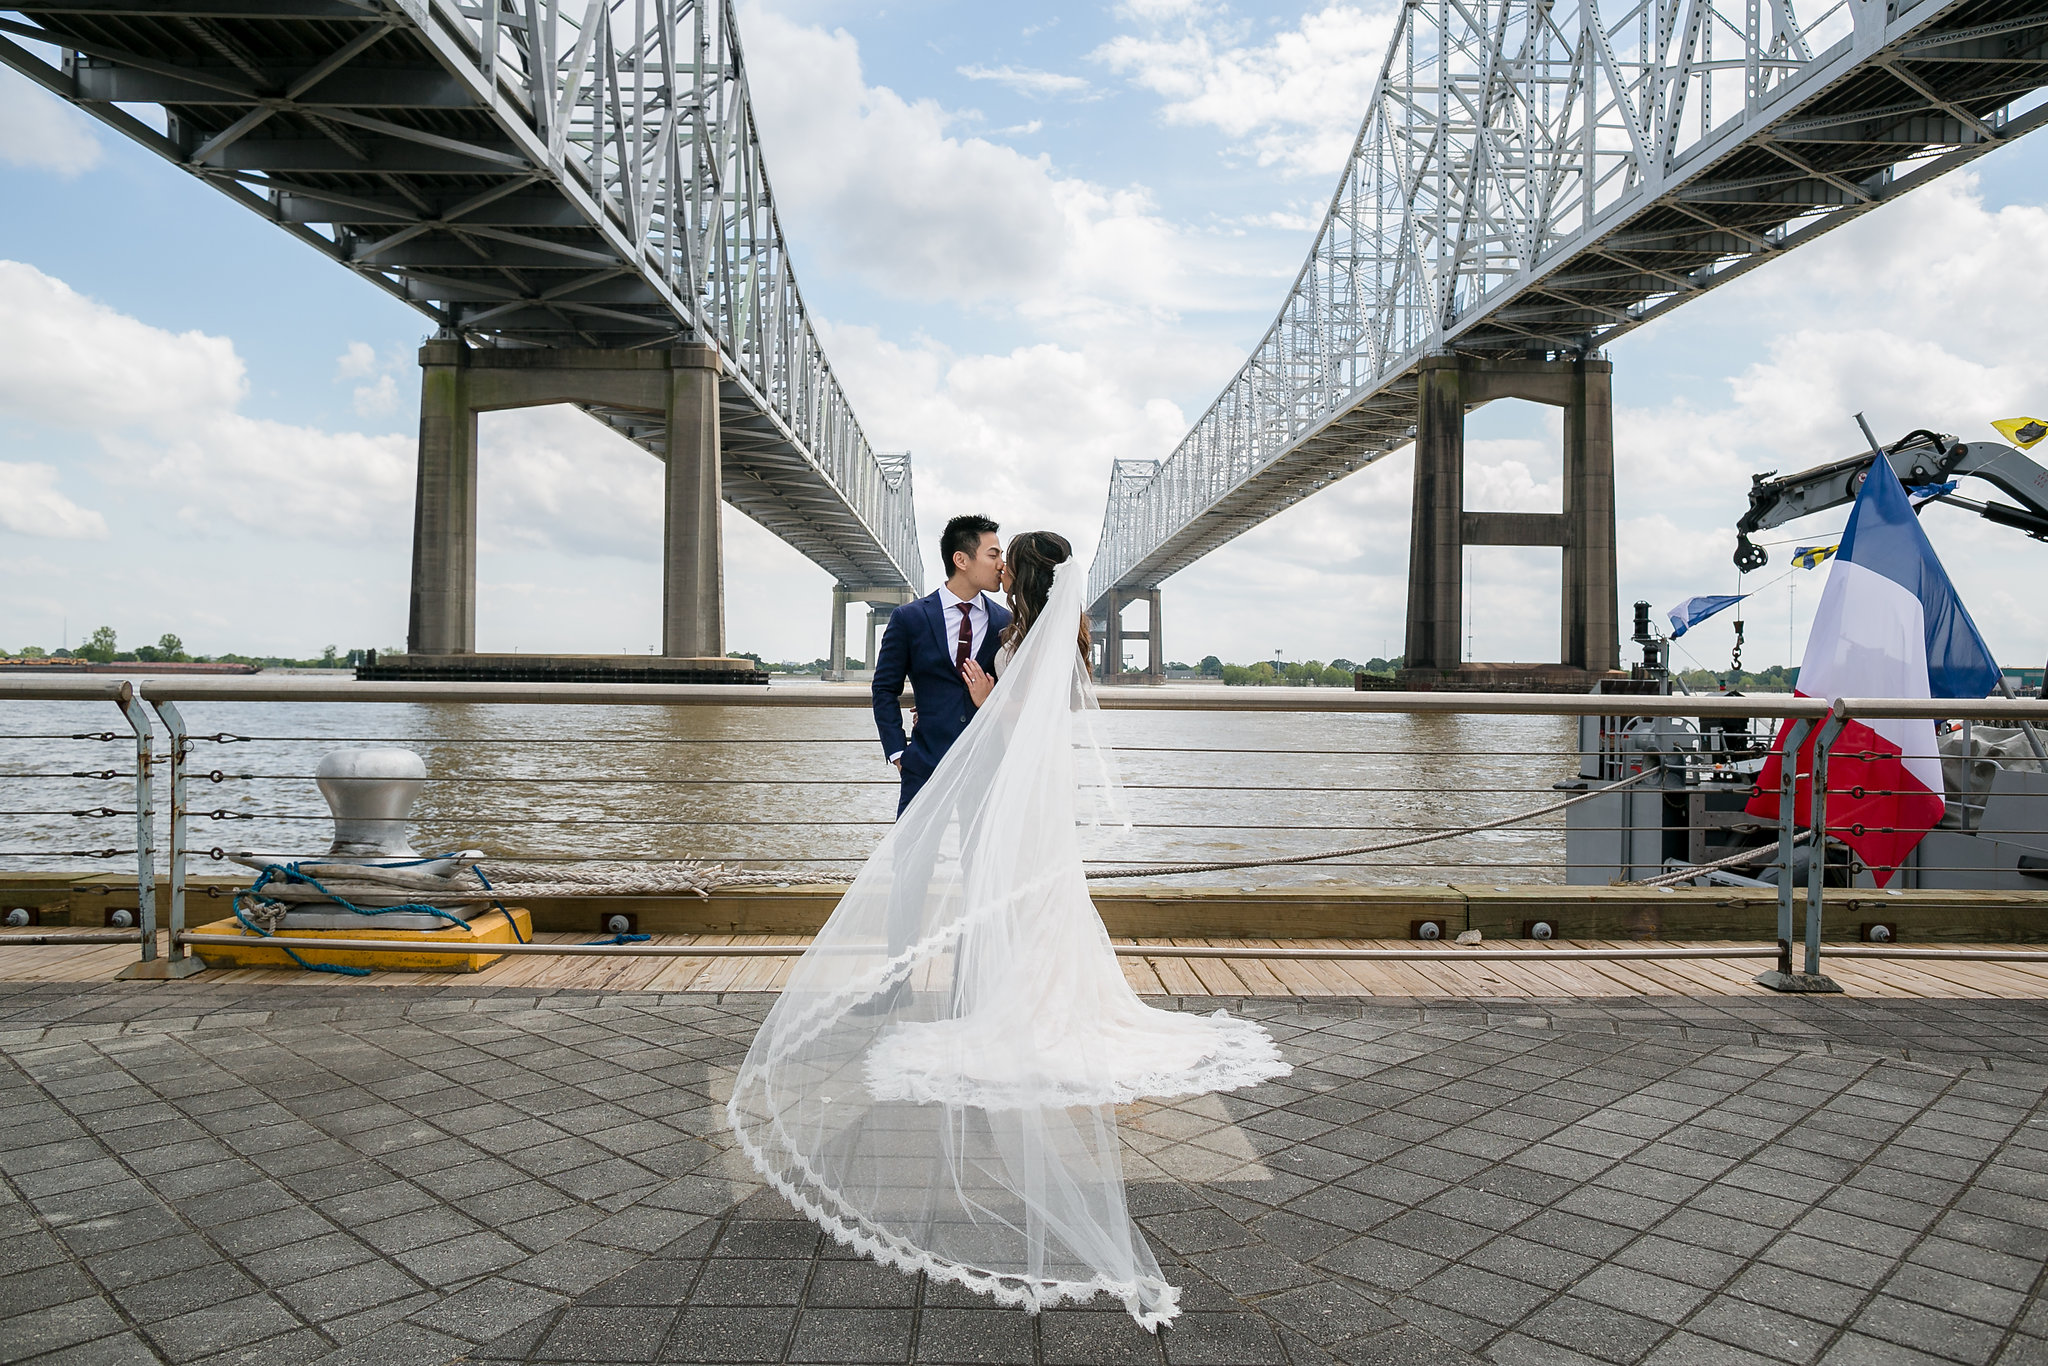 New Orleans Wedding Photography Destination David Kim-11.jpg